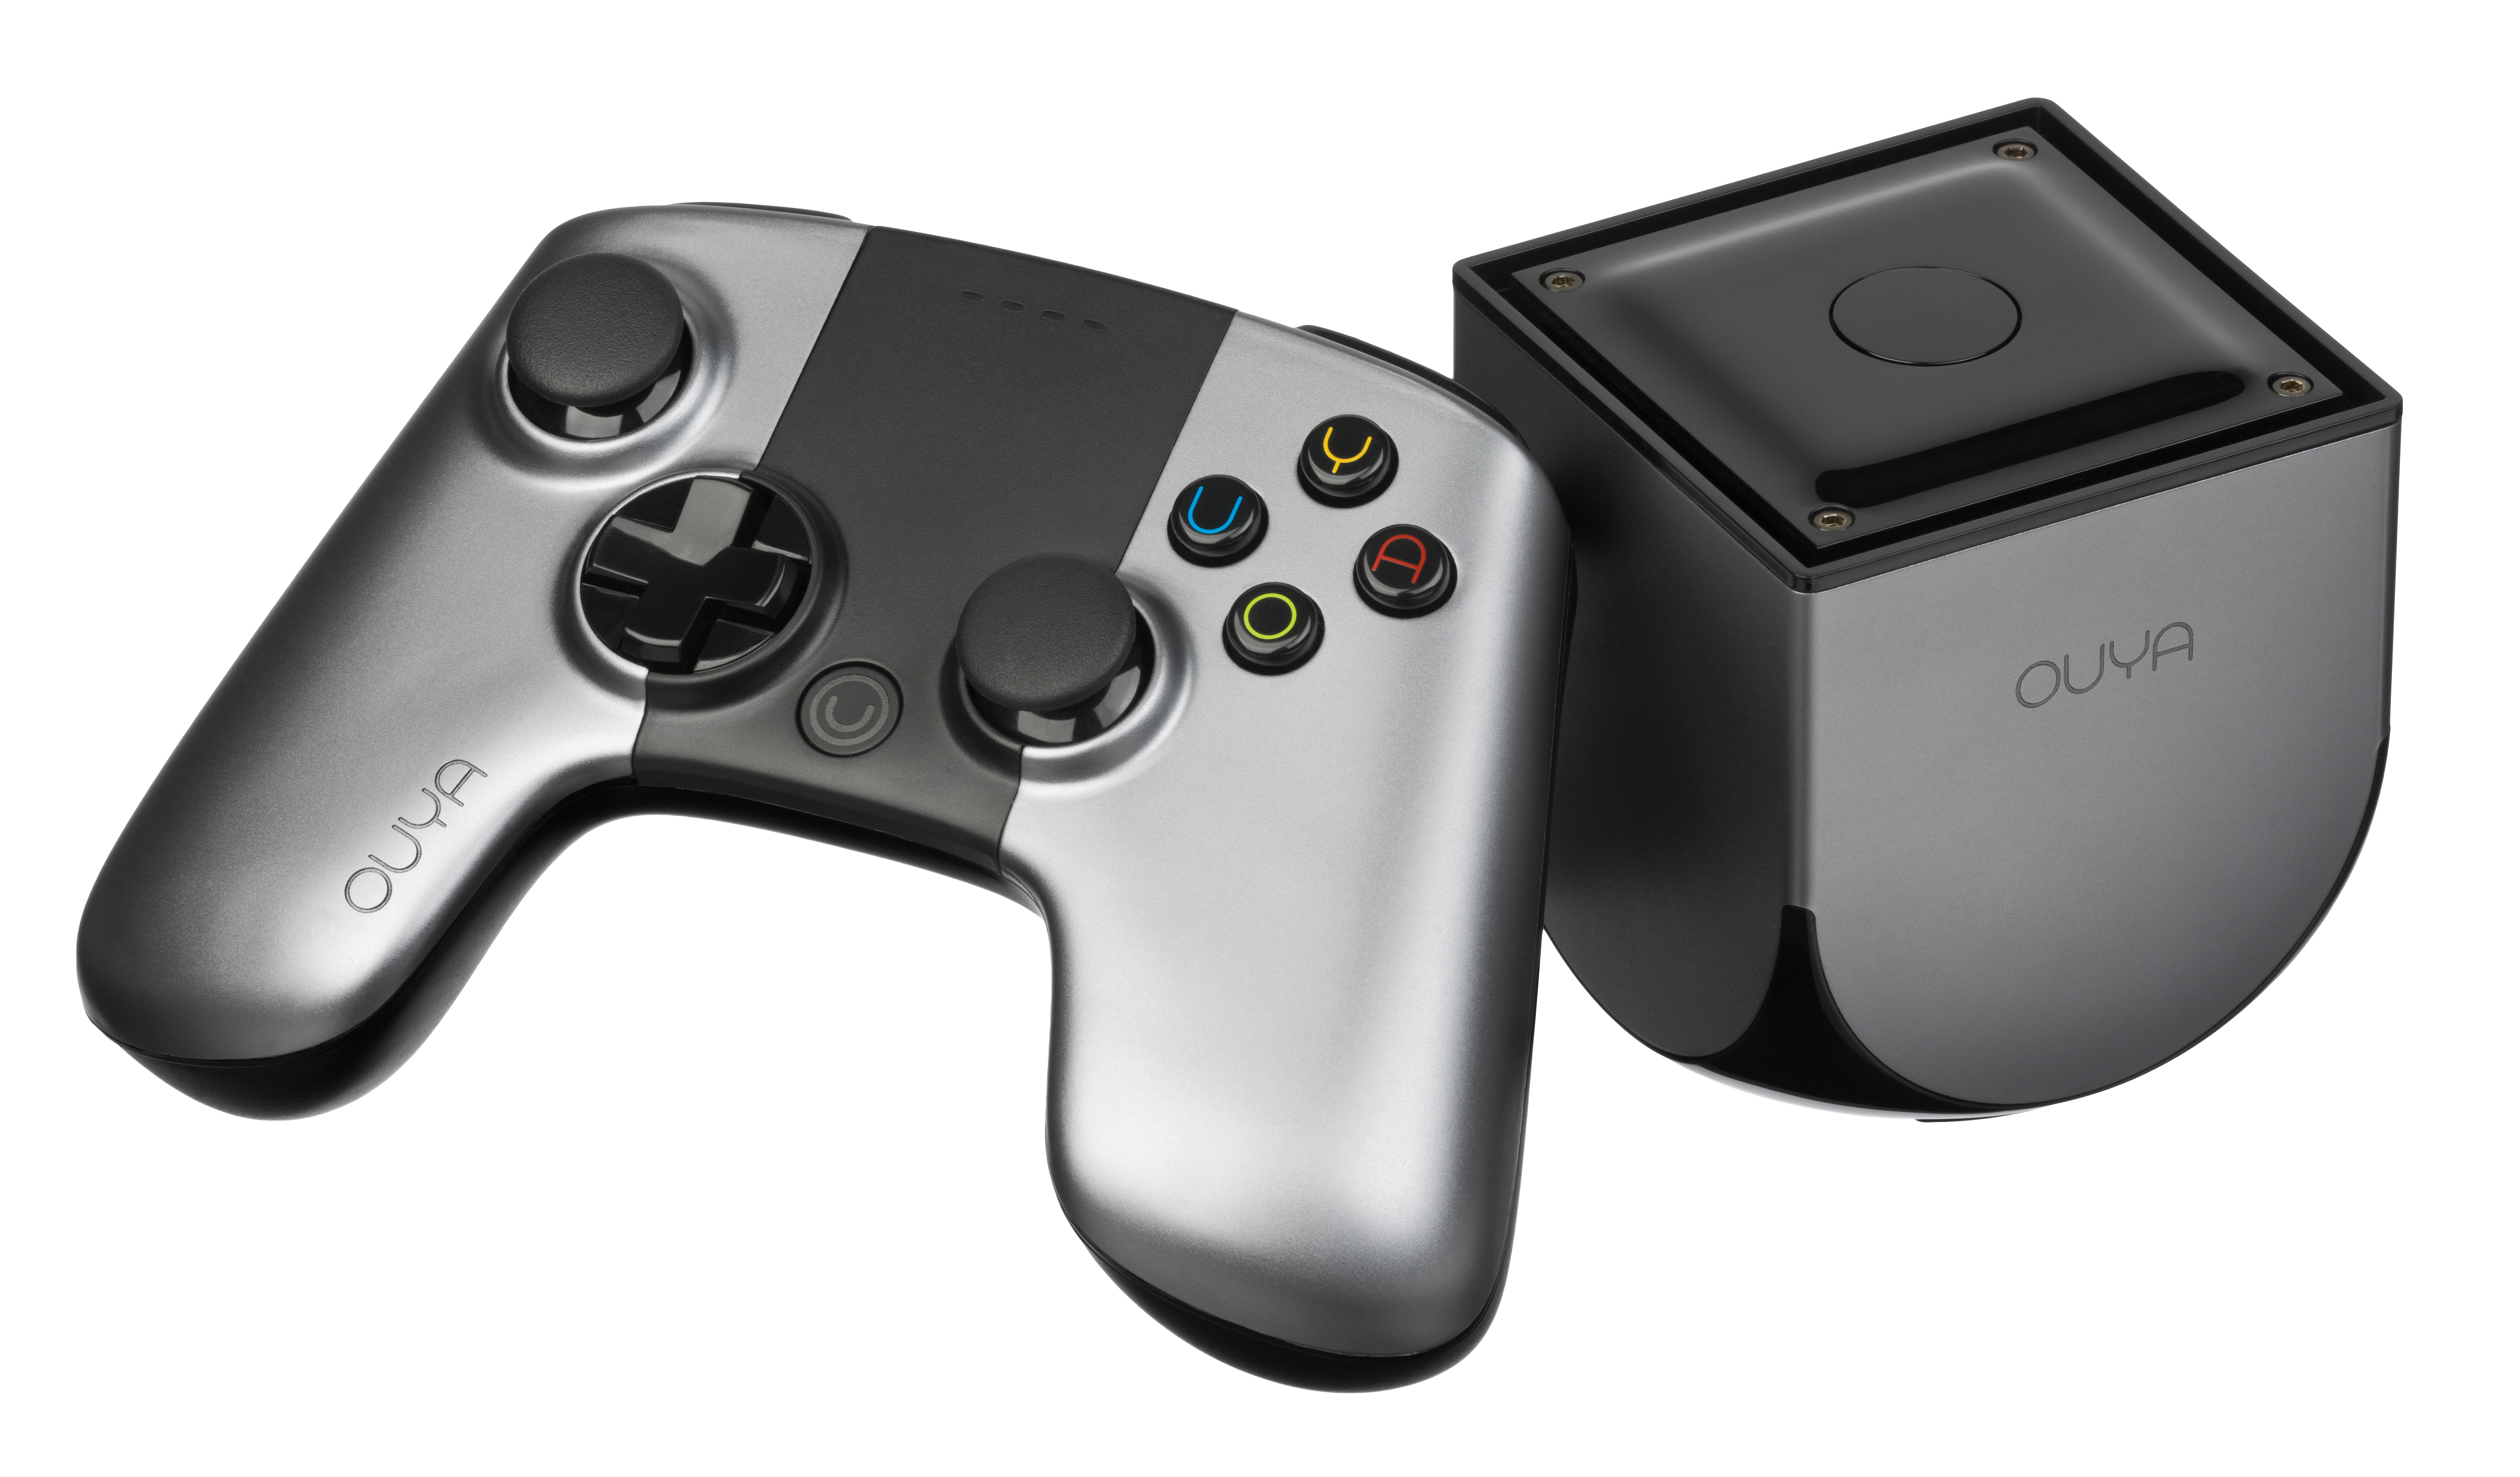 At $8.5 million, the Ouya is the 6th largest successful Kickstarter campaign.